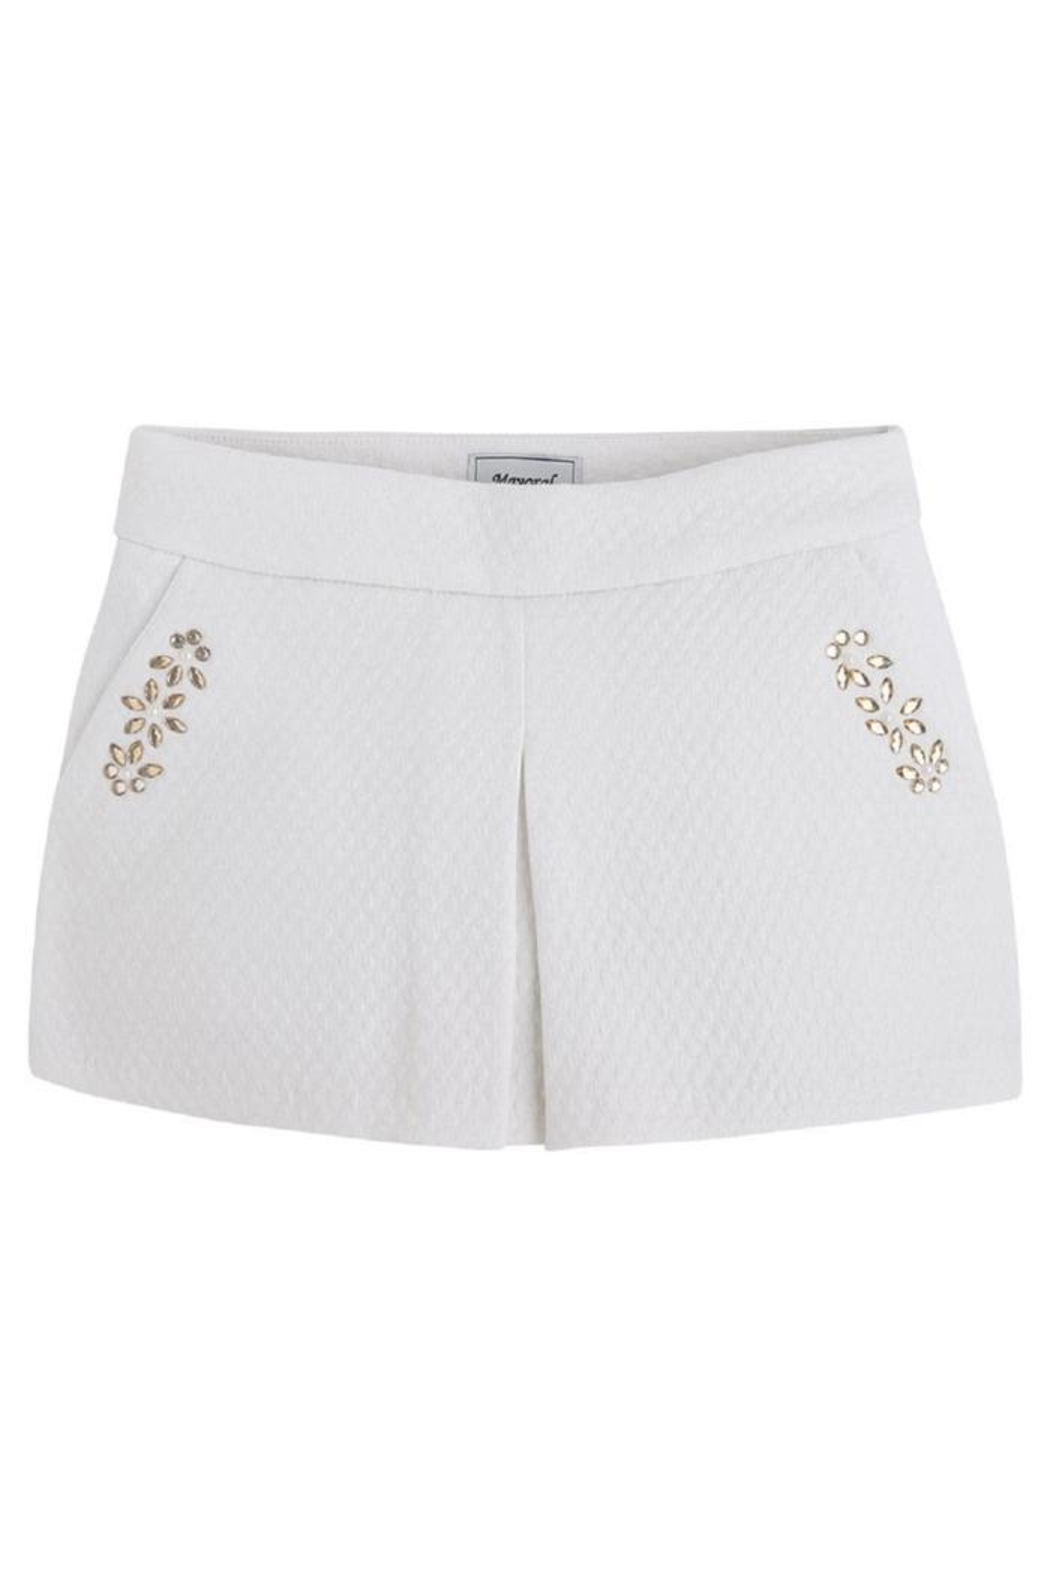 Mayoral Metallic Jeweled Skort - Main Image